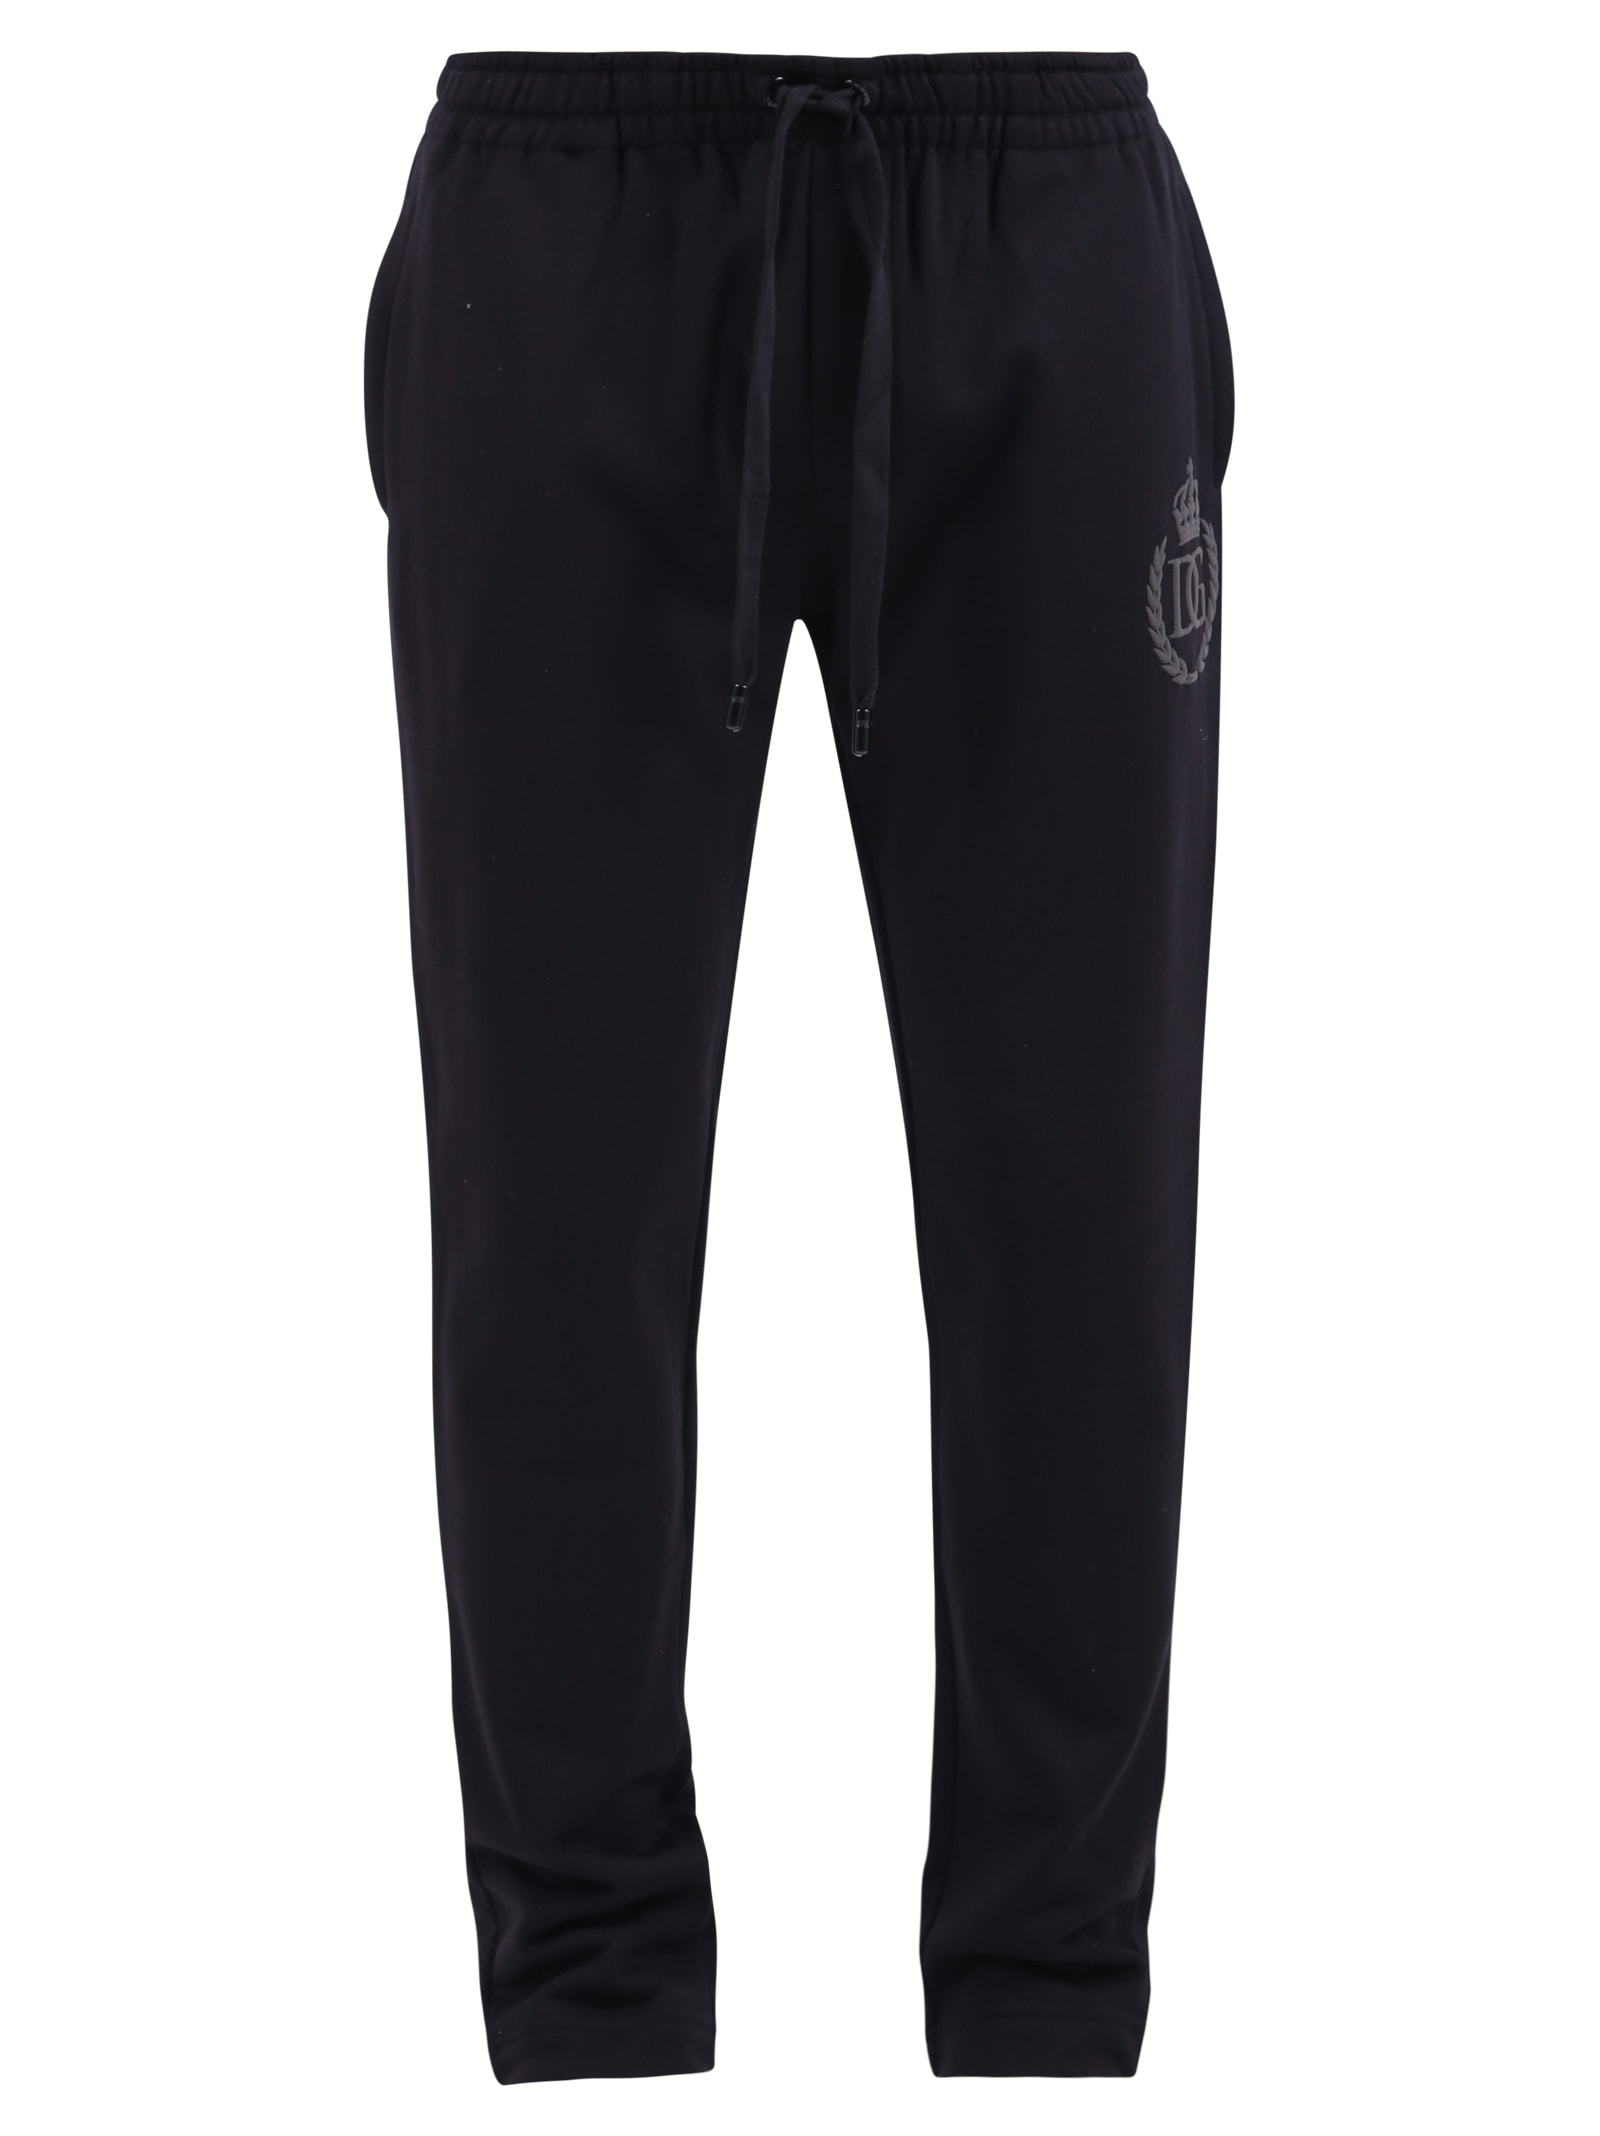 Dolce & Gabbana Branded Trousers